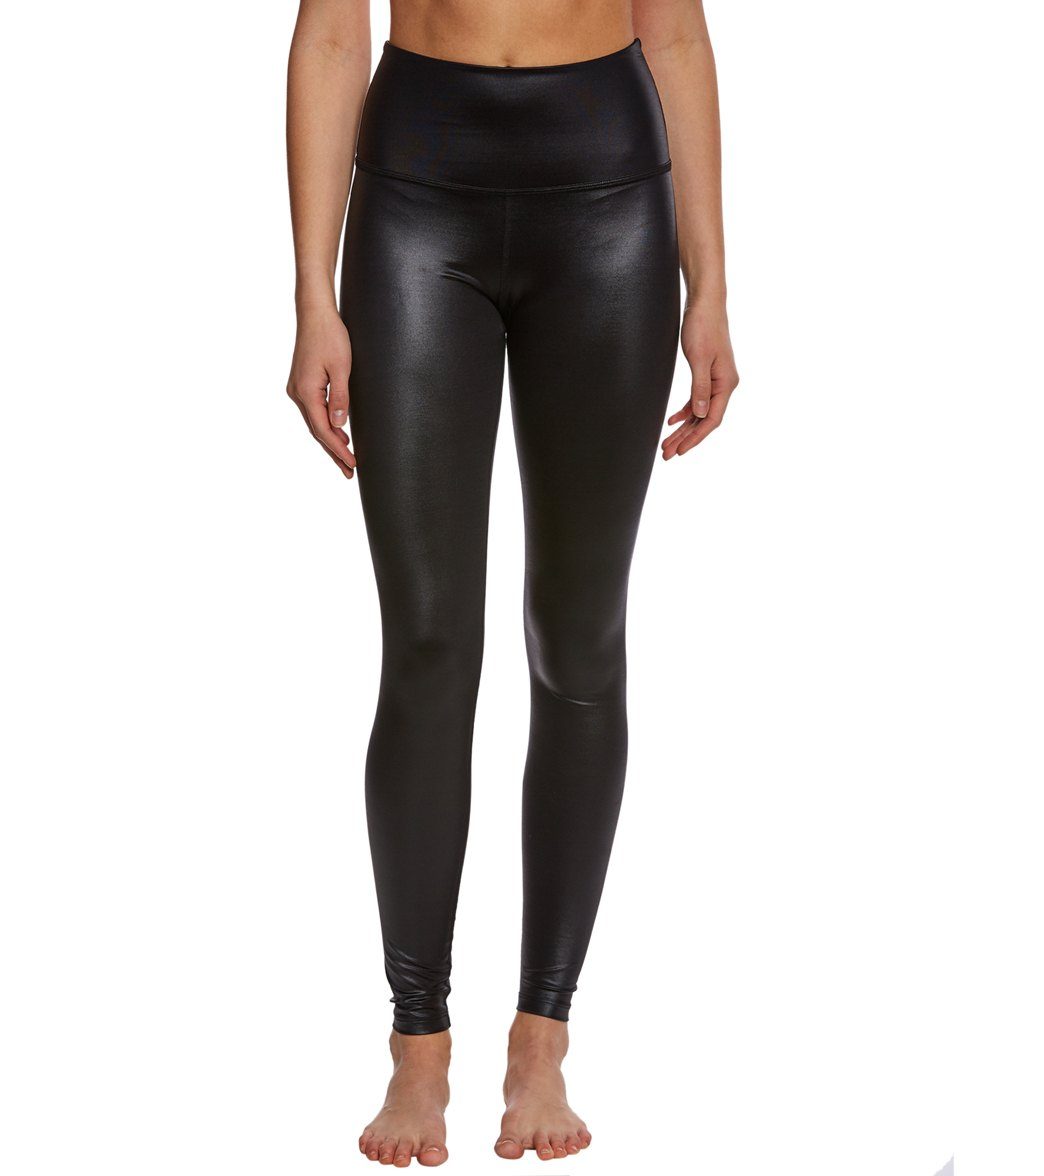 8acadbd04f Beyond Yoga Gloss Over High Waisted Yoga Leggings at SwimOutlet.com - Free  Shipping